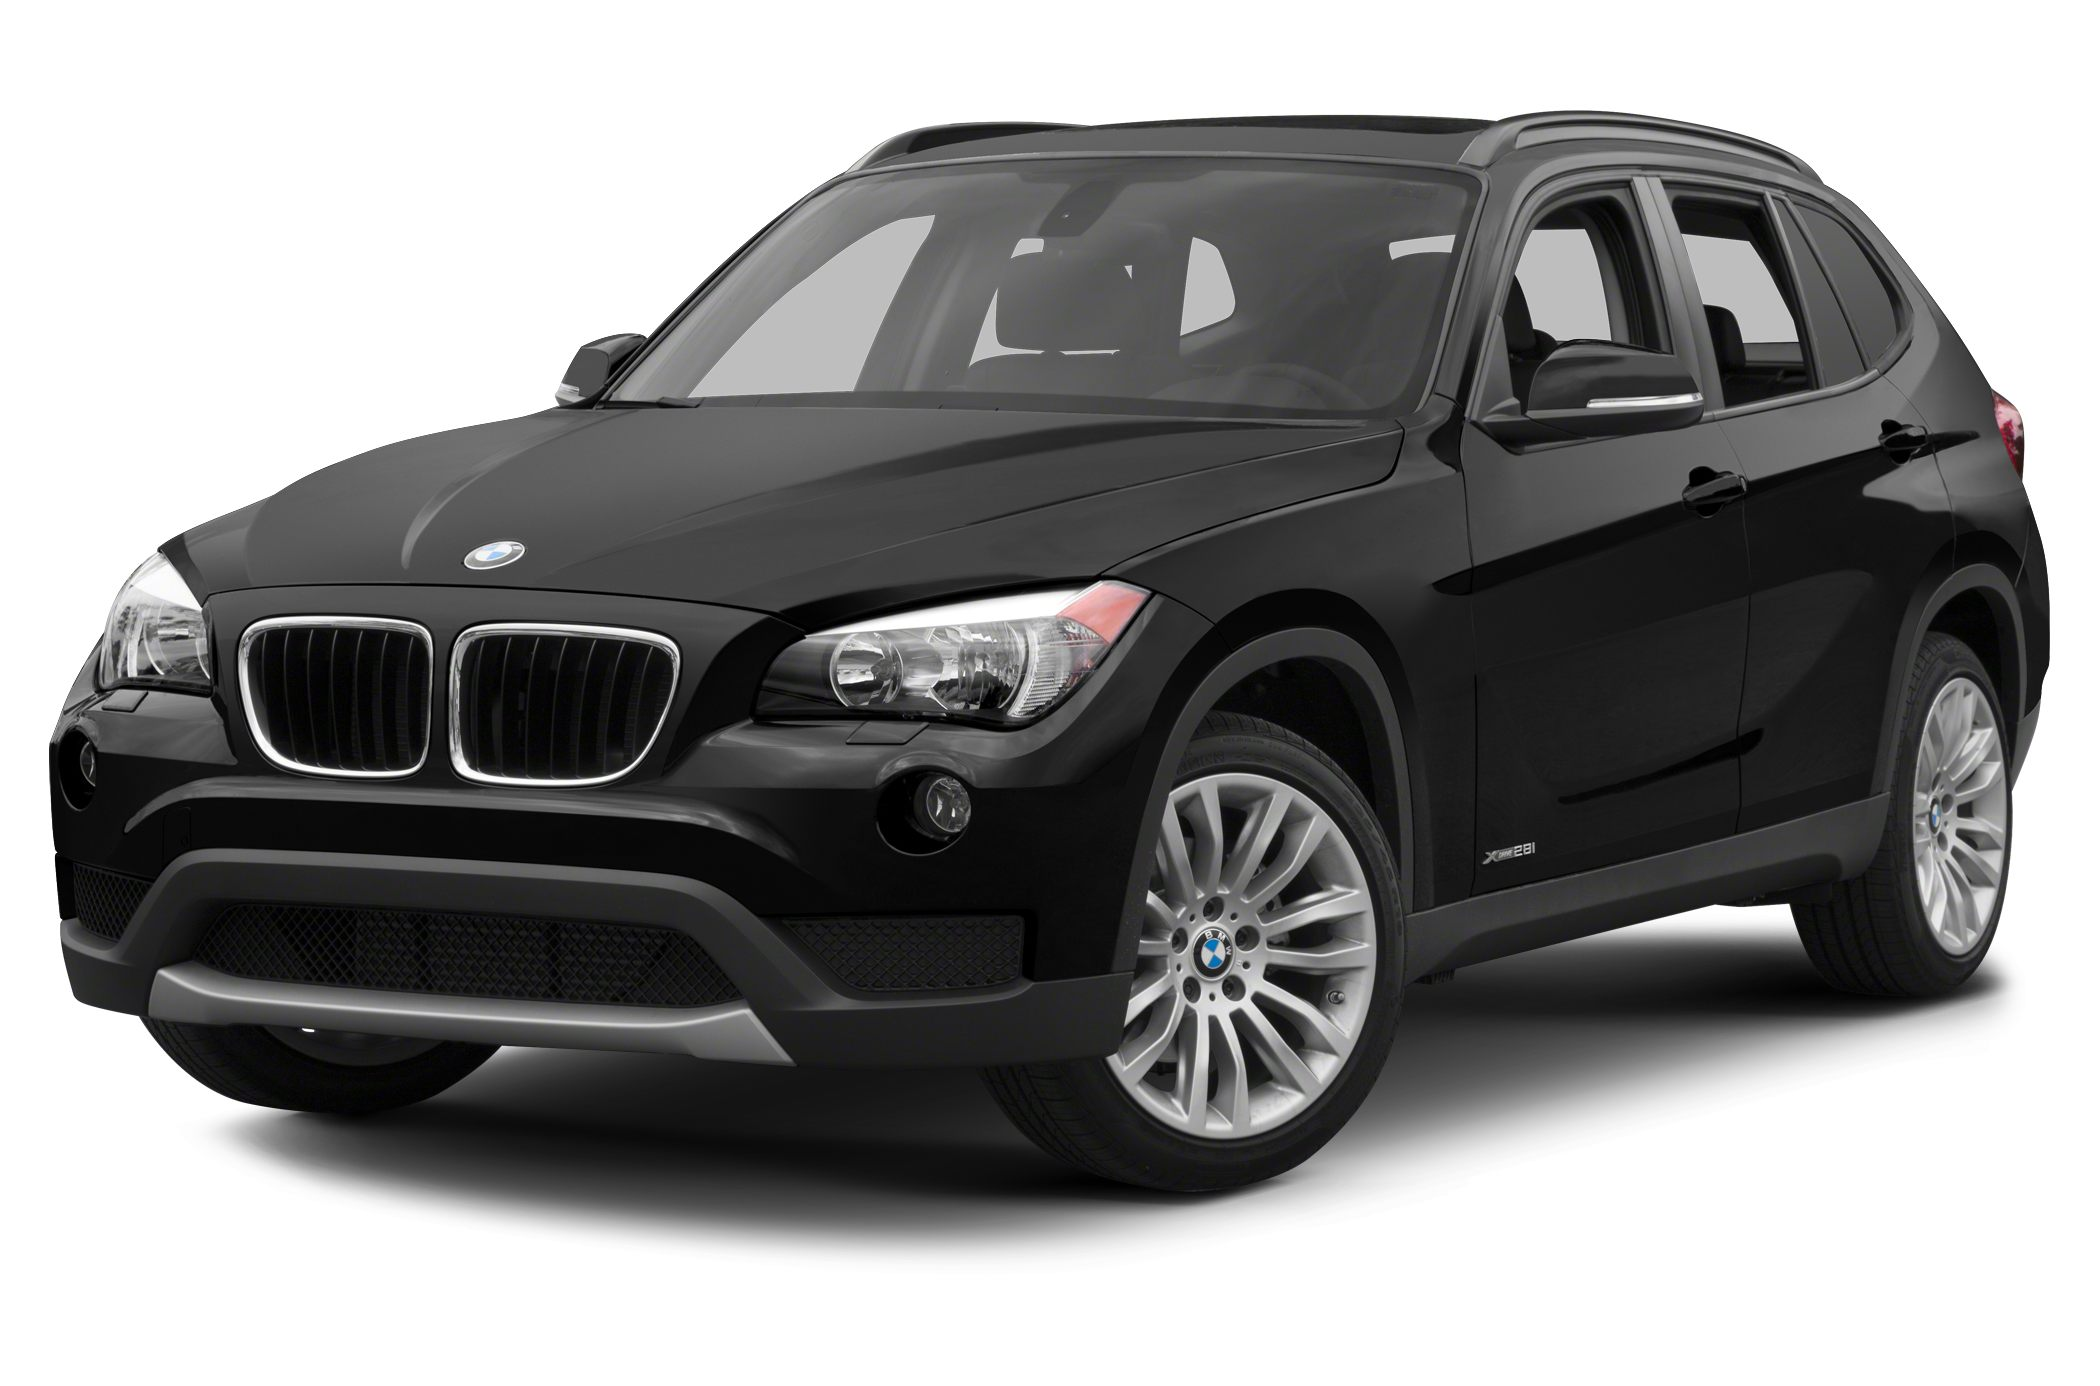 2013 BMW X1 XDrive 35i SUV for sale in Indianapolis for $44,985 with 13,819 miles.